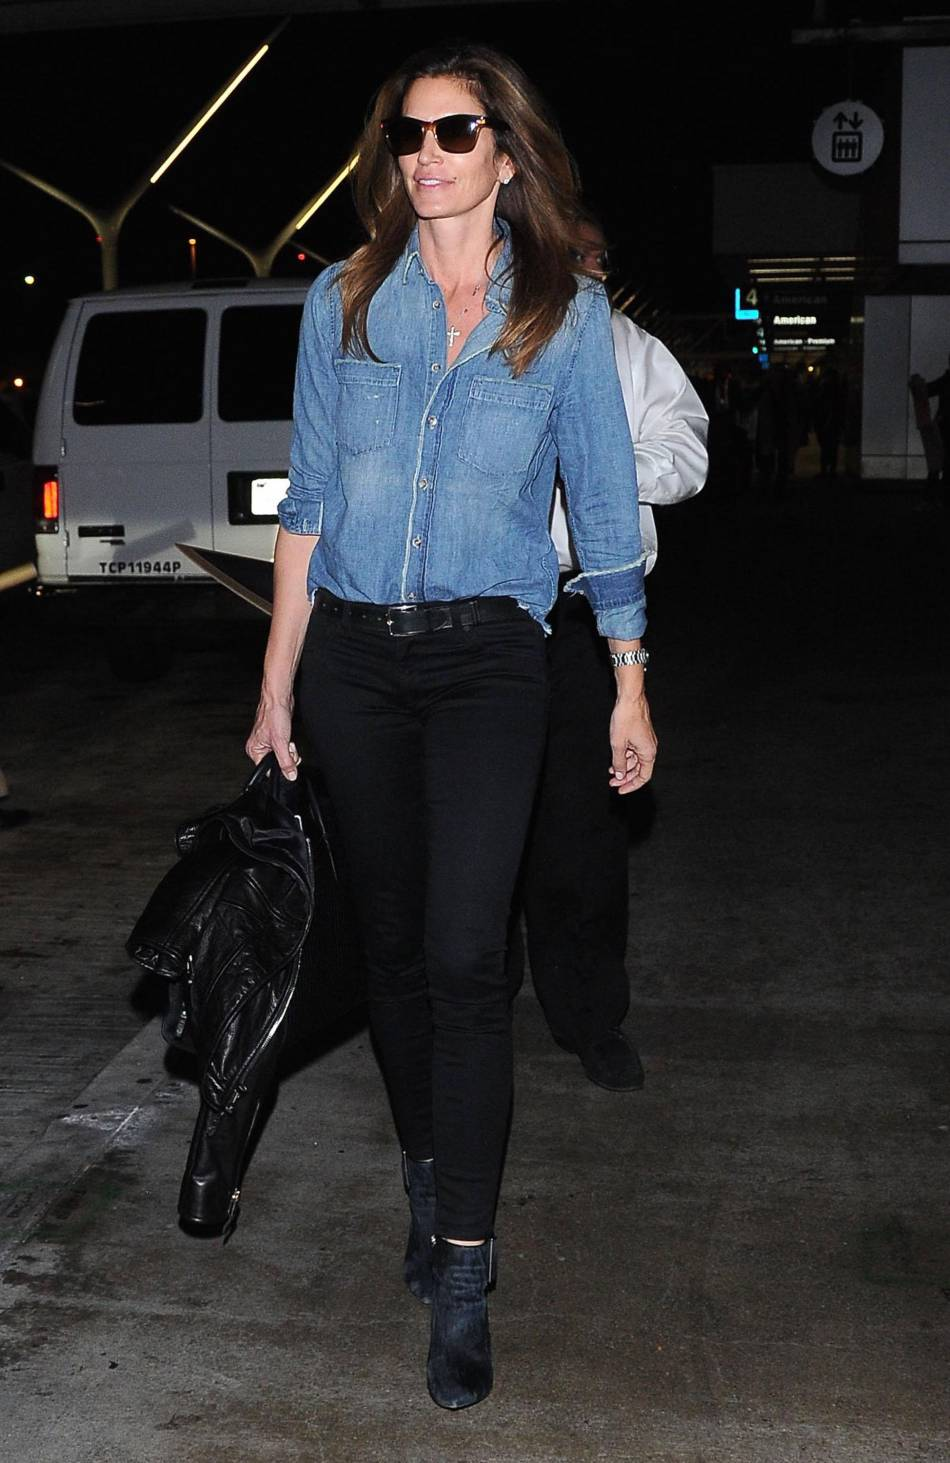 Cindy Crawford : chic sans chichis. On adore !